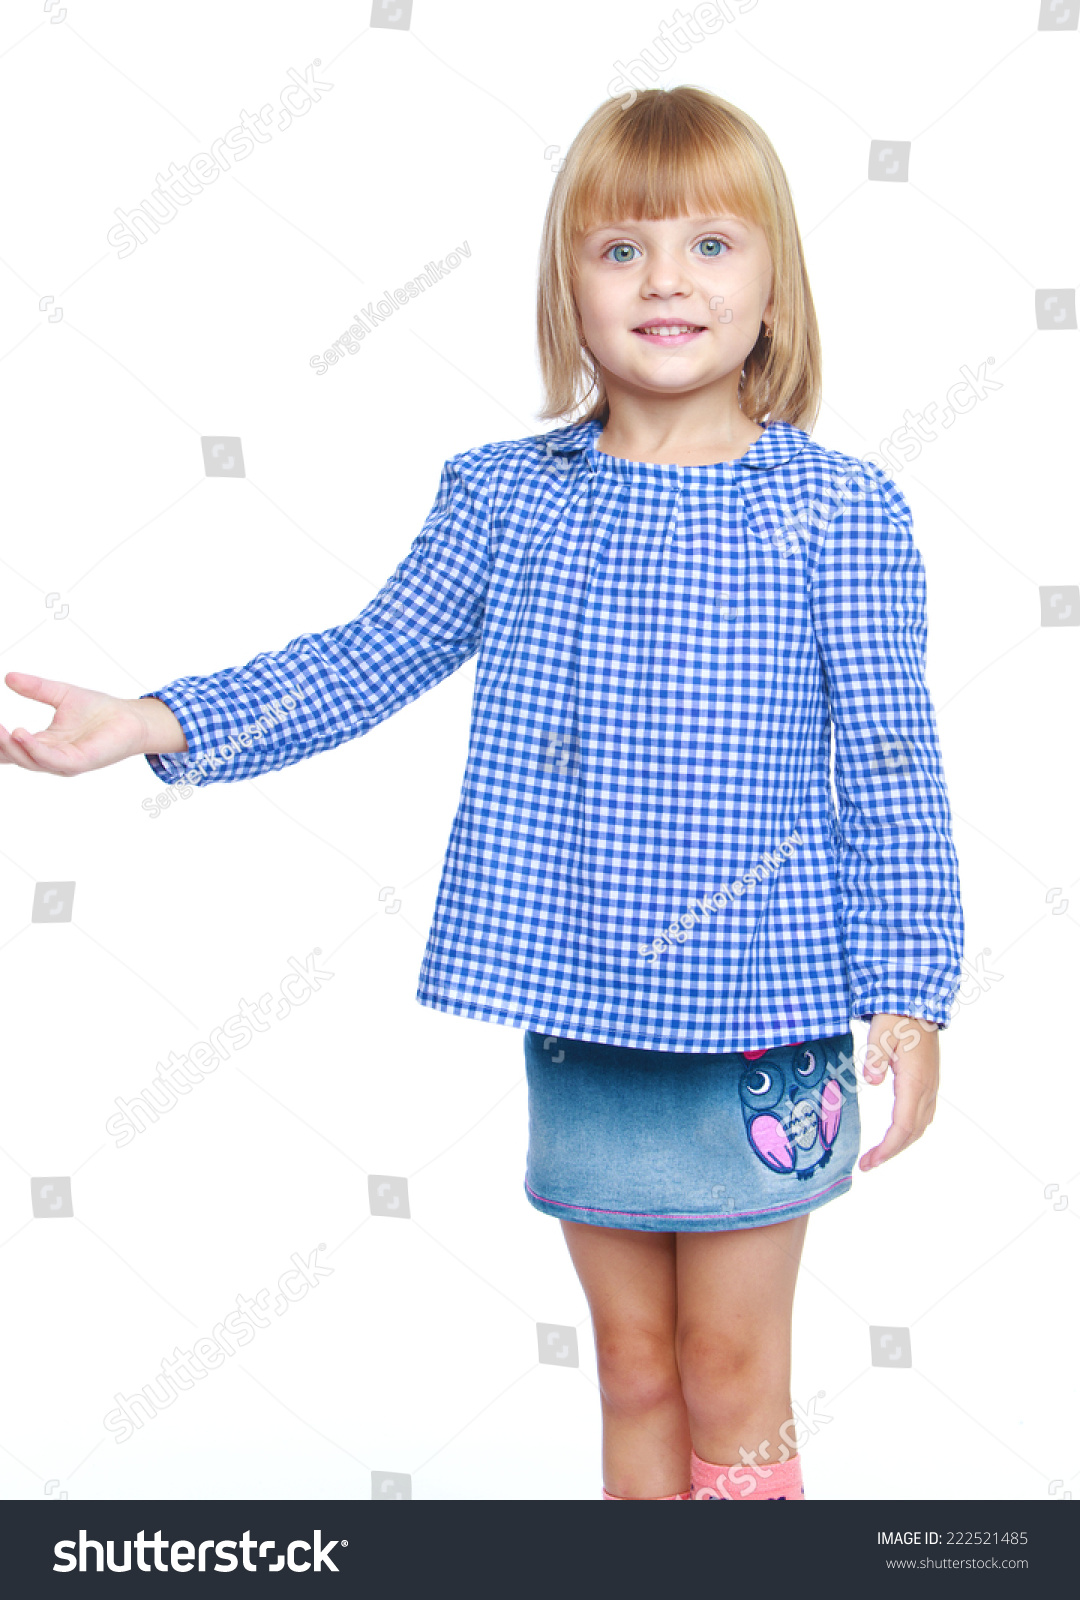 559fe25f910 Charming little girl in a blue blouse and denim skirt isolated on white  background